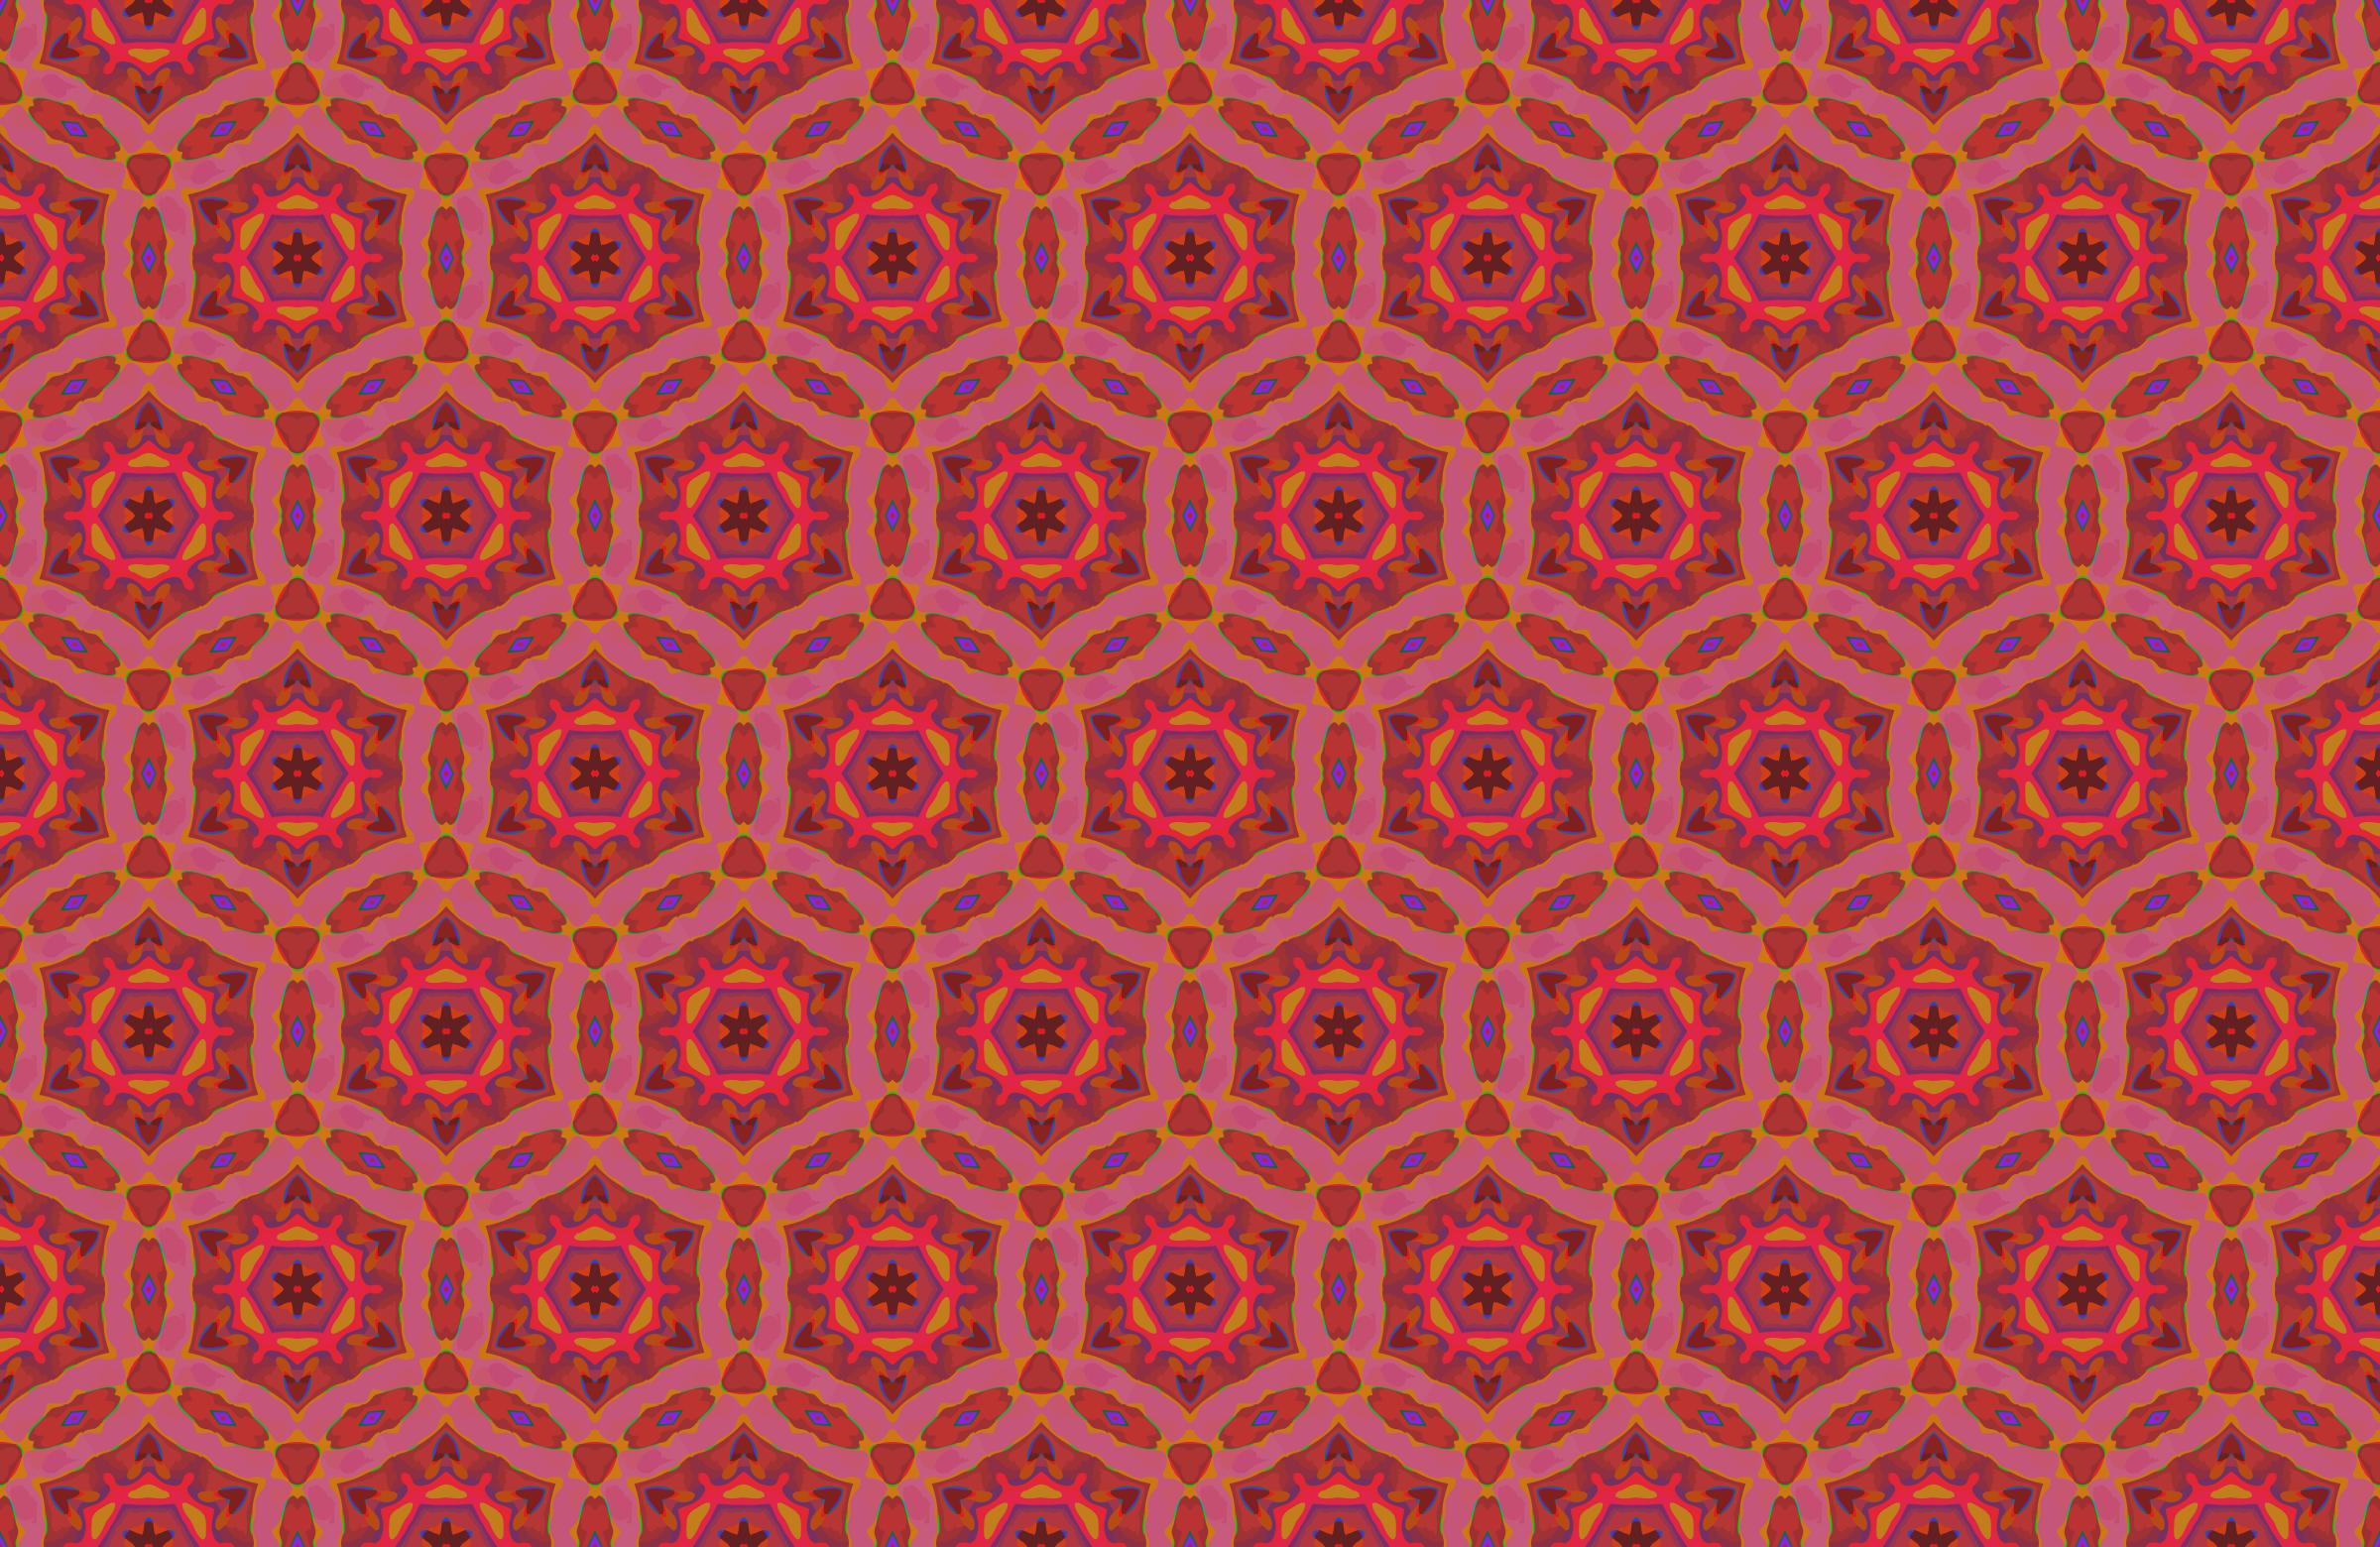 Background pattern 117 (colour 2) by Firkin